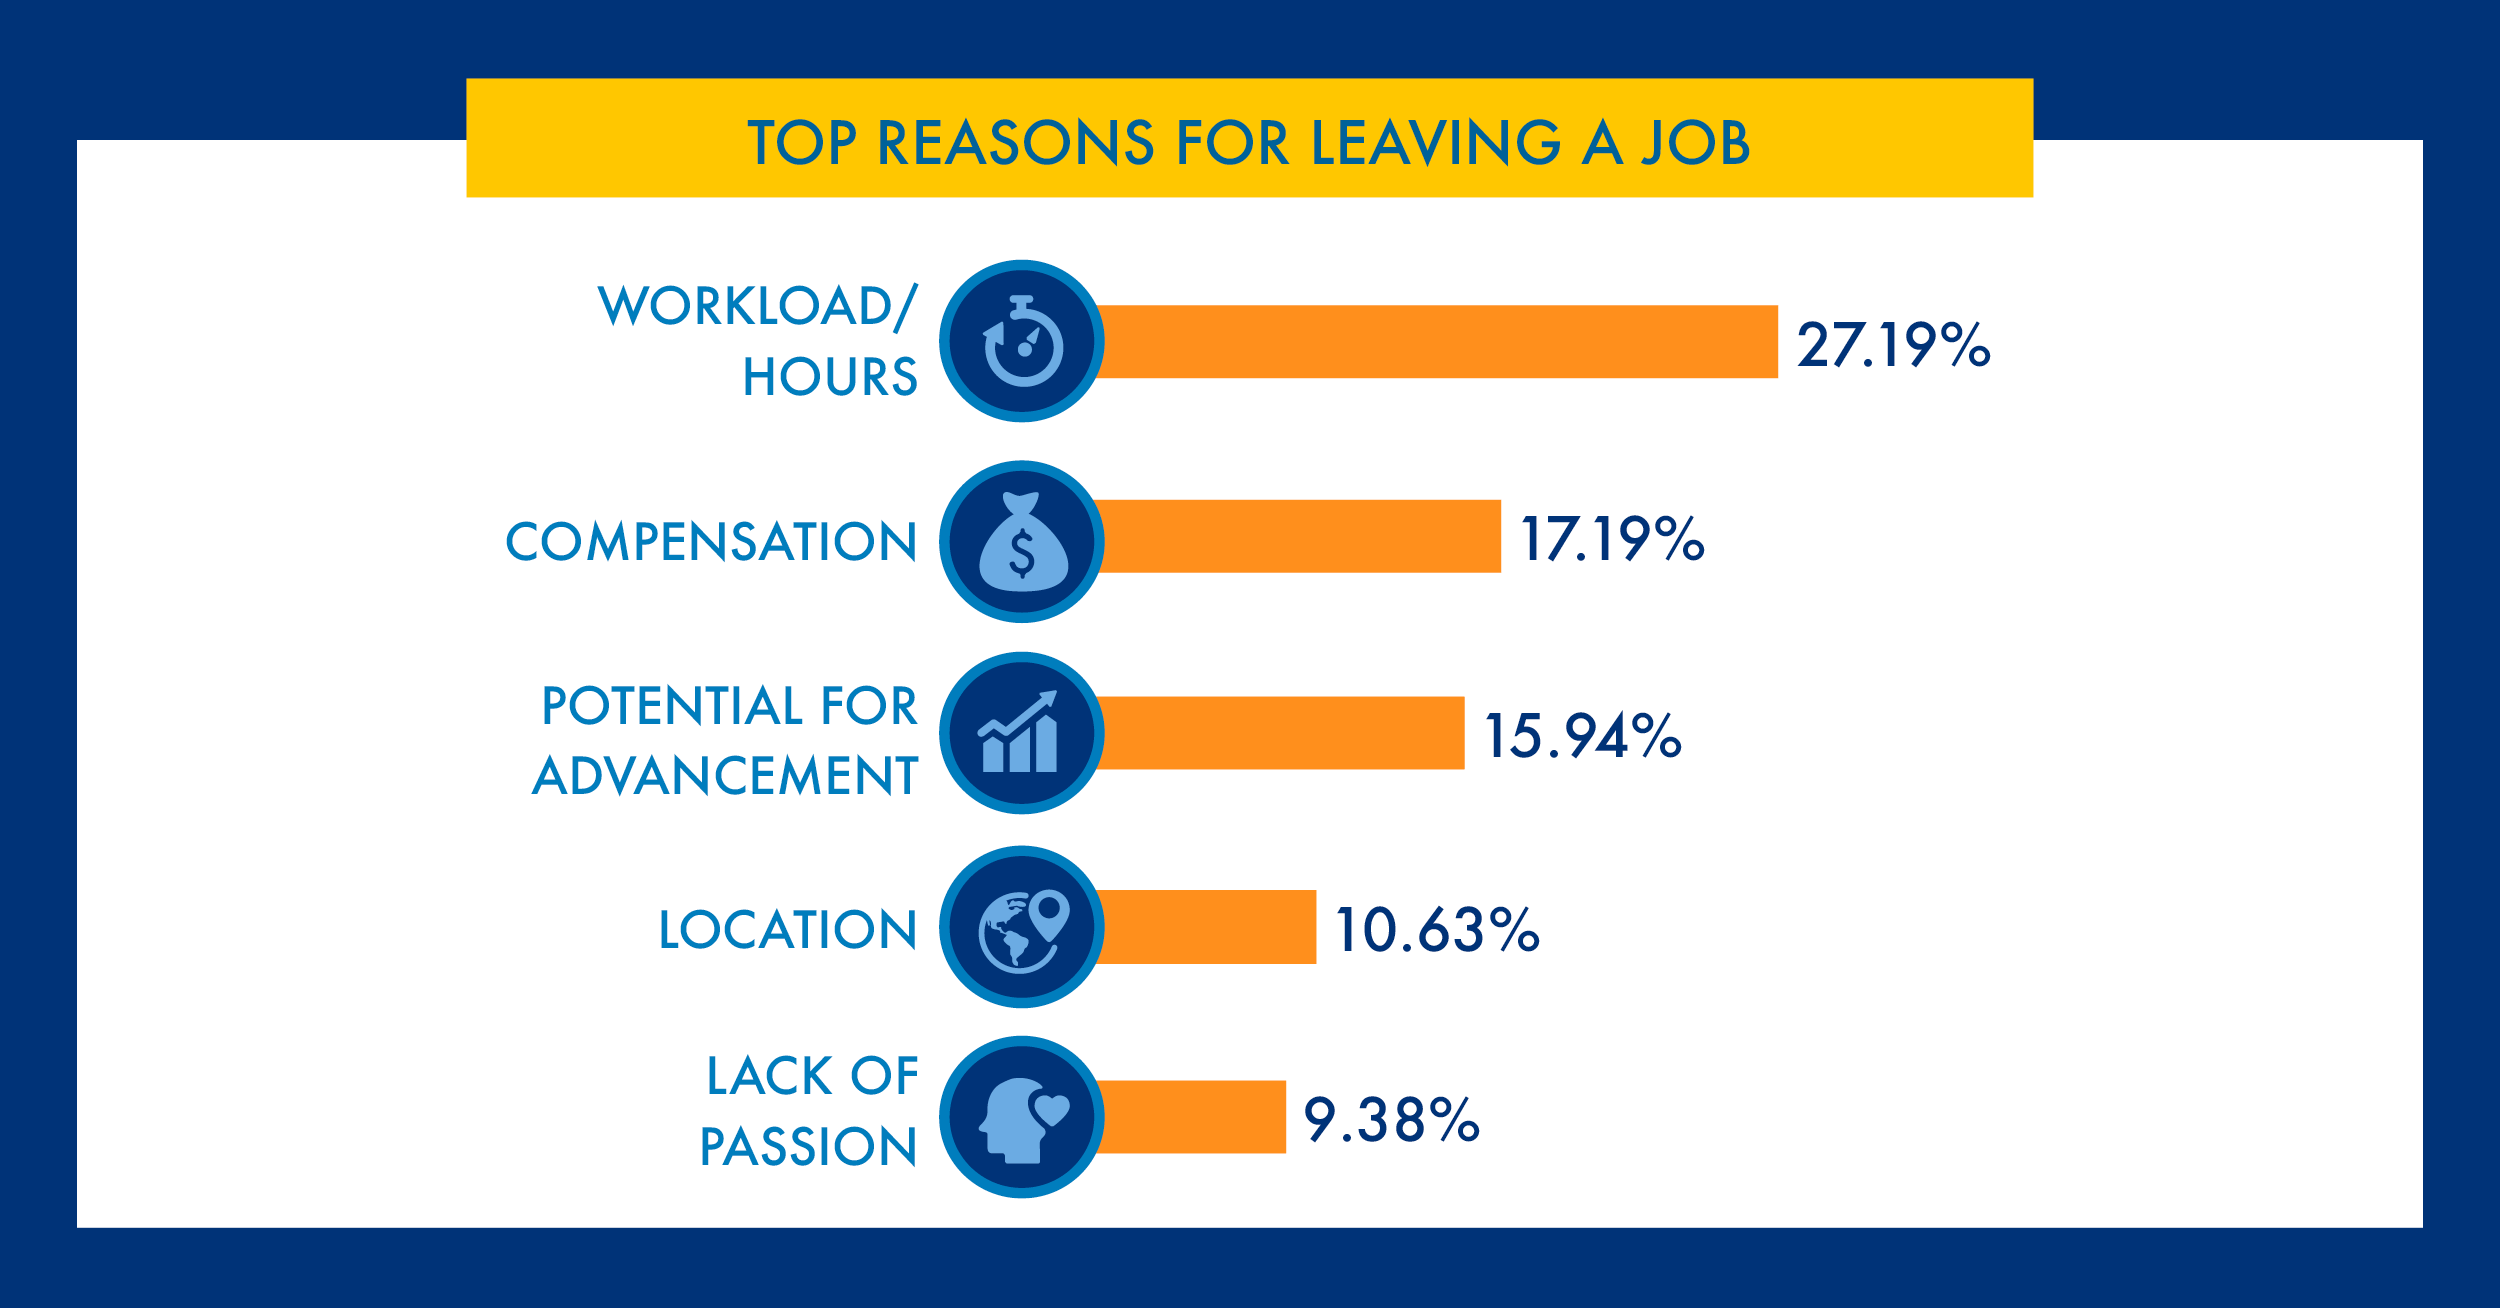 Top reasons for leaving a job